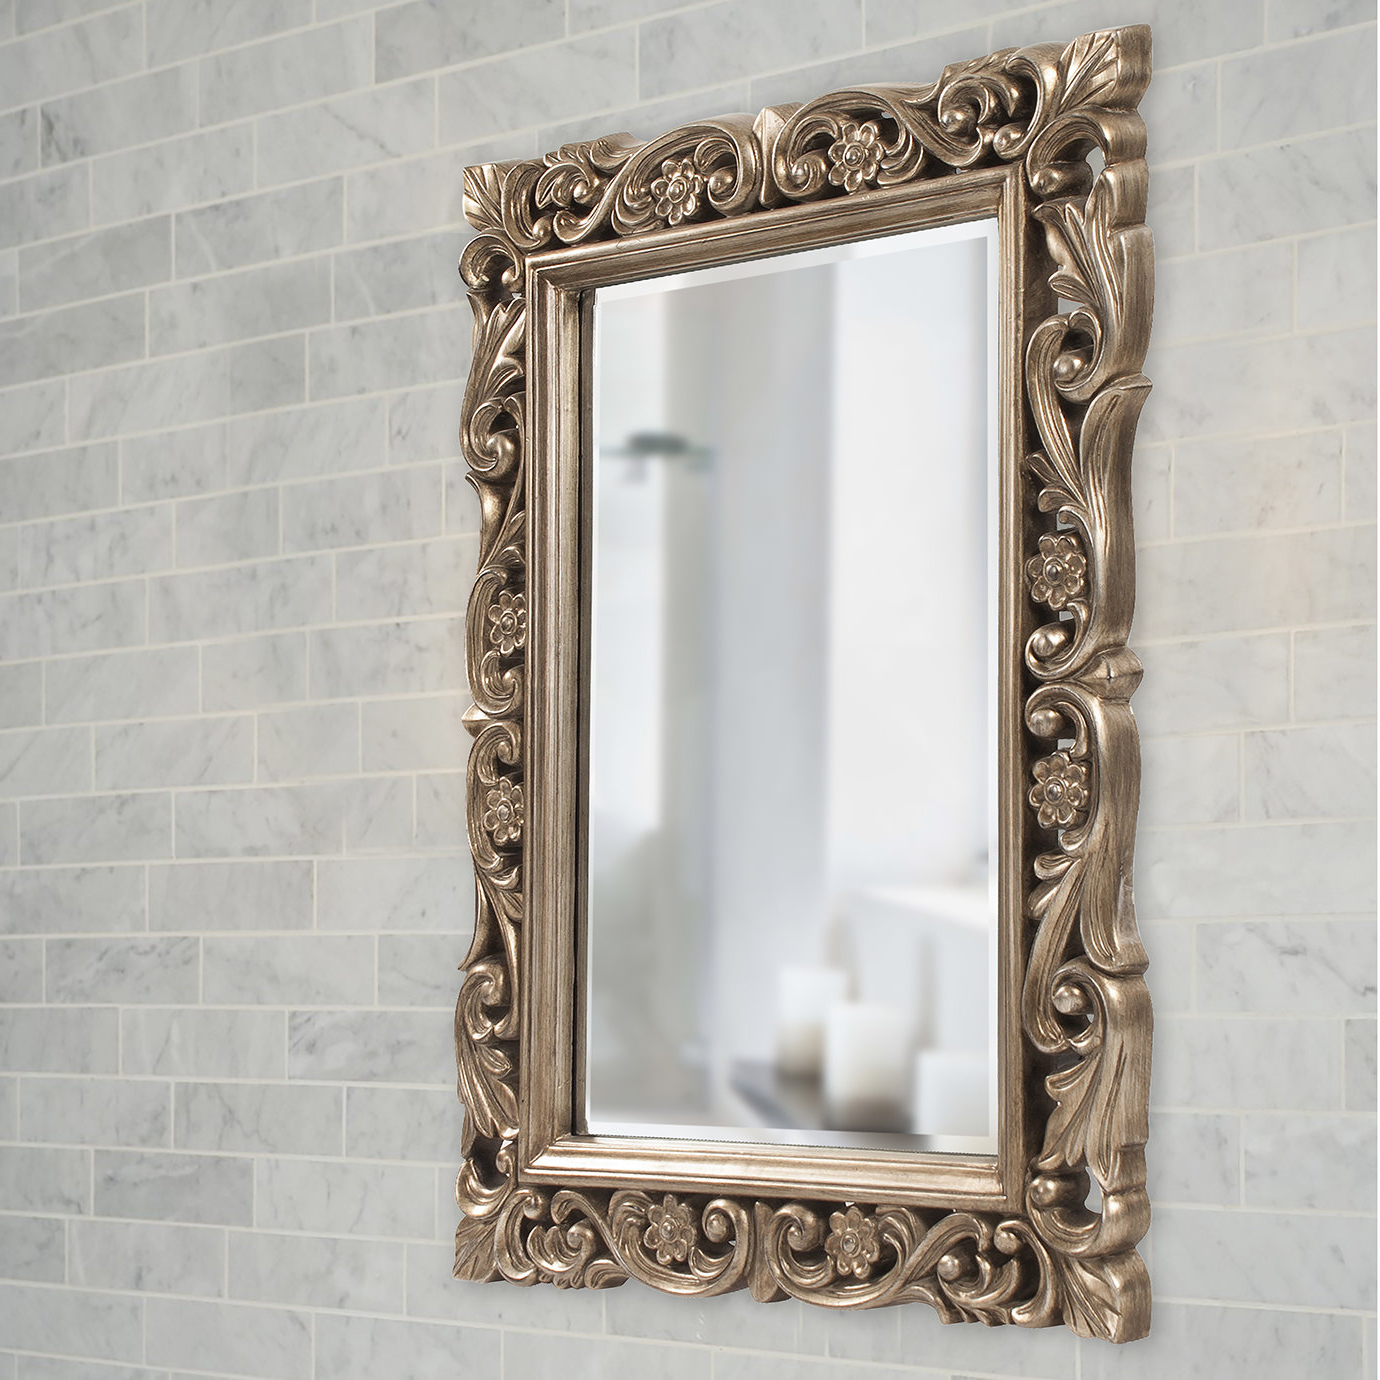 Wayfair For Vassallo Beaded Bronze Beveled Wall Mirrors (Gallery 20 of 20)